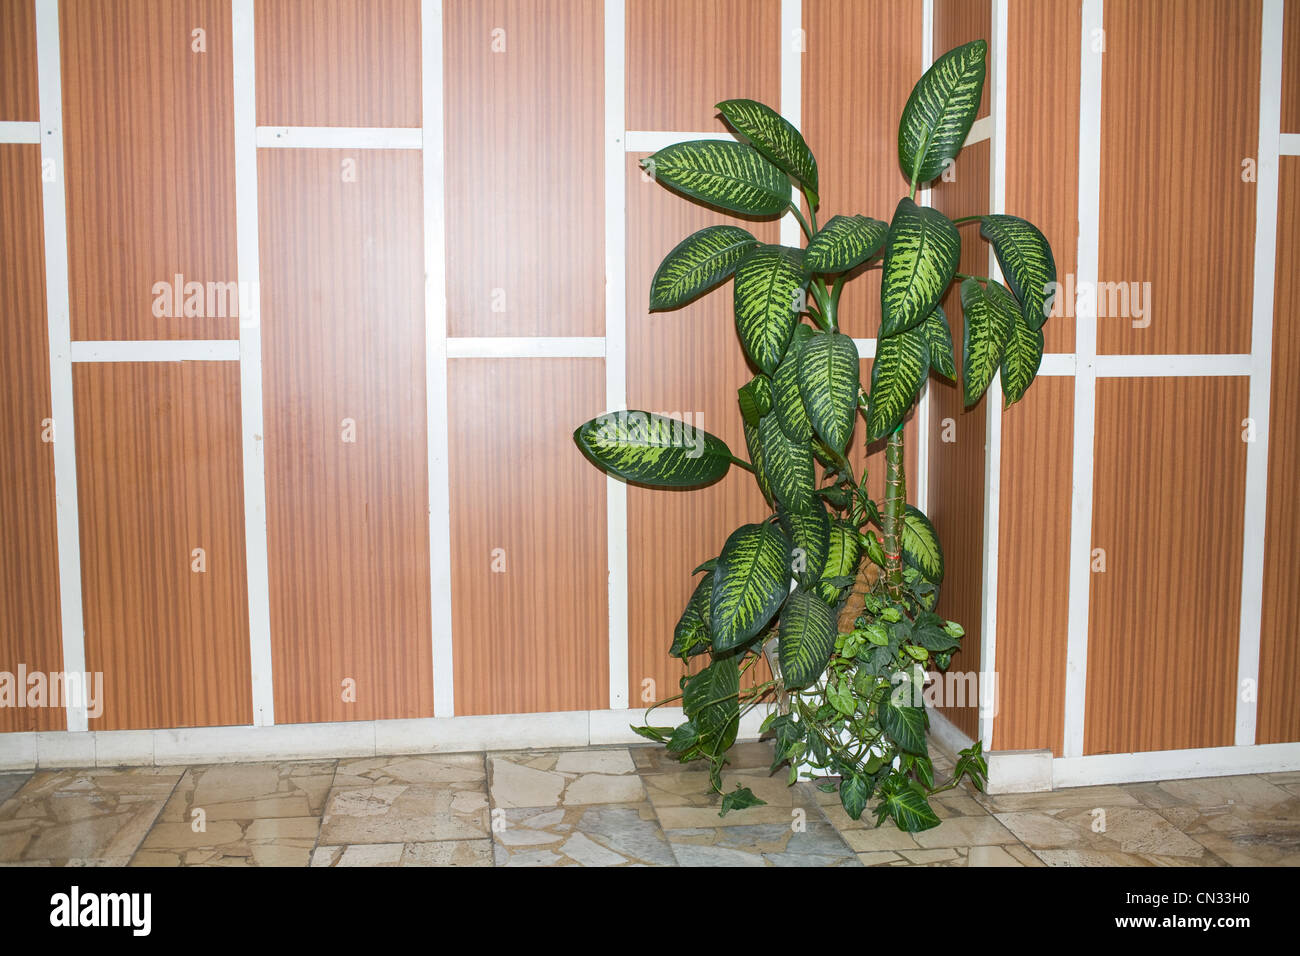 Pot plant against panelled wall - Stock Image